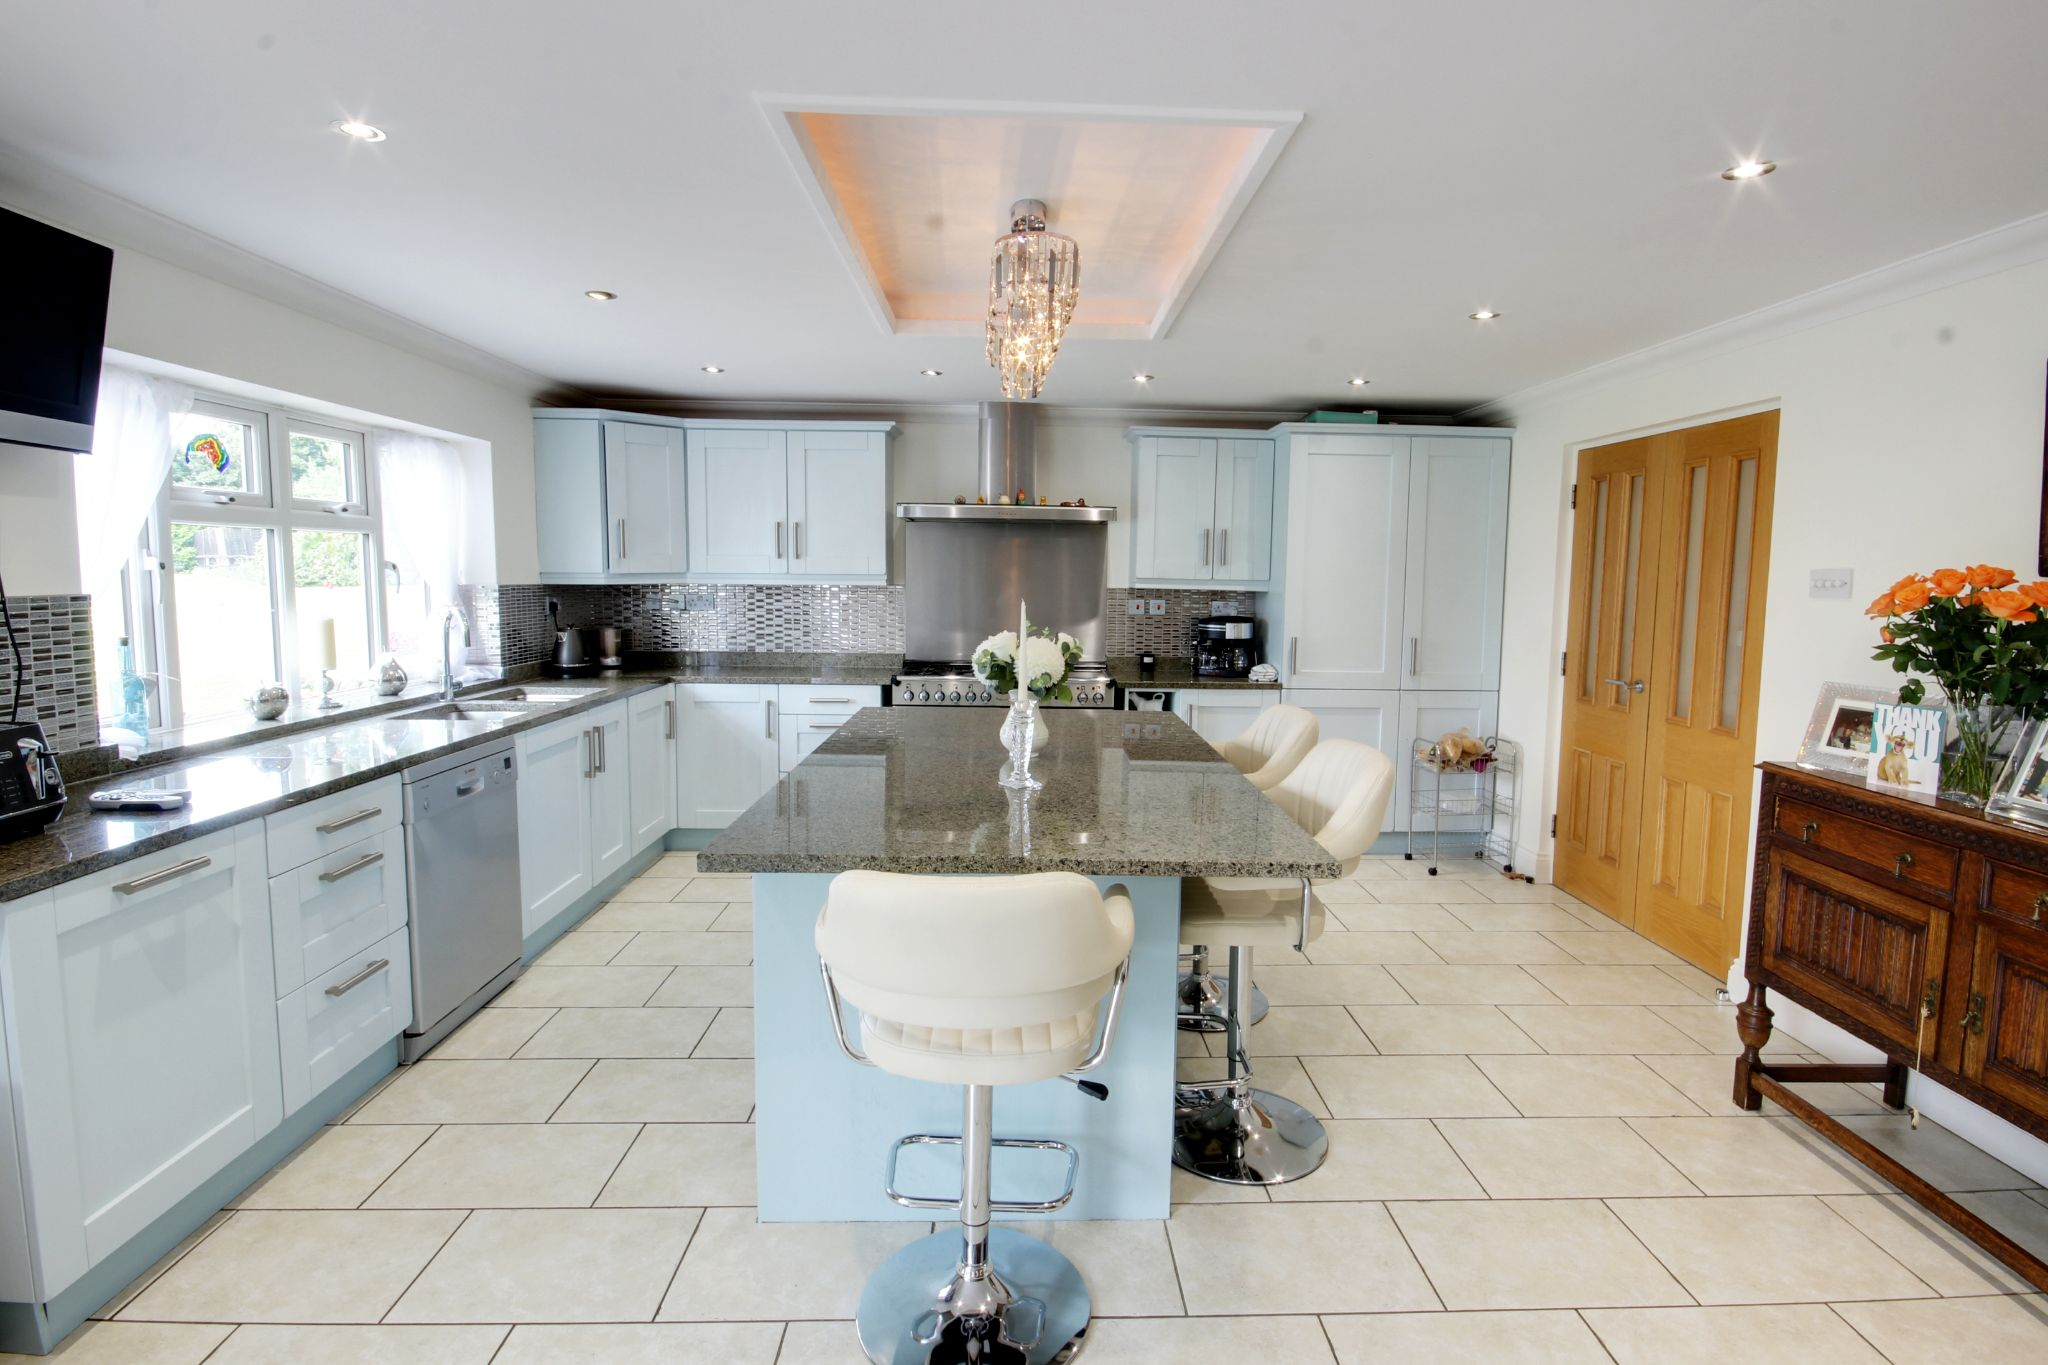 5 bedroom detached house SSTC in North Mymms - Photograph 4